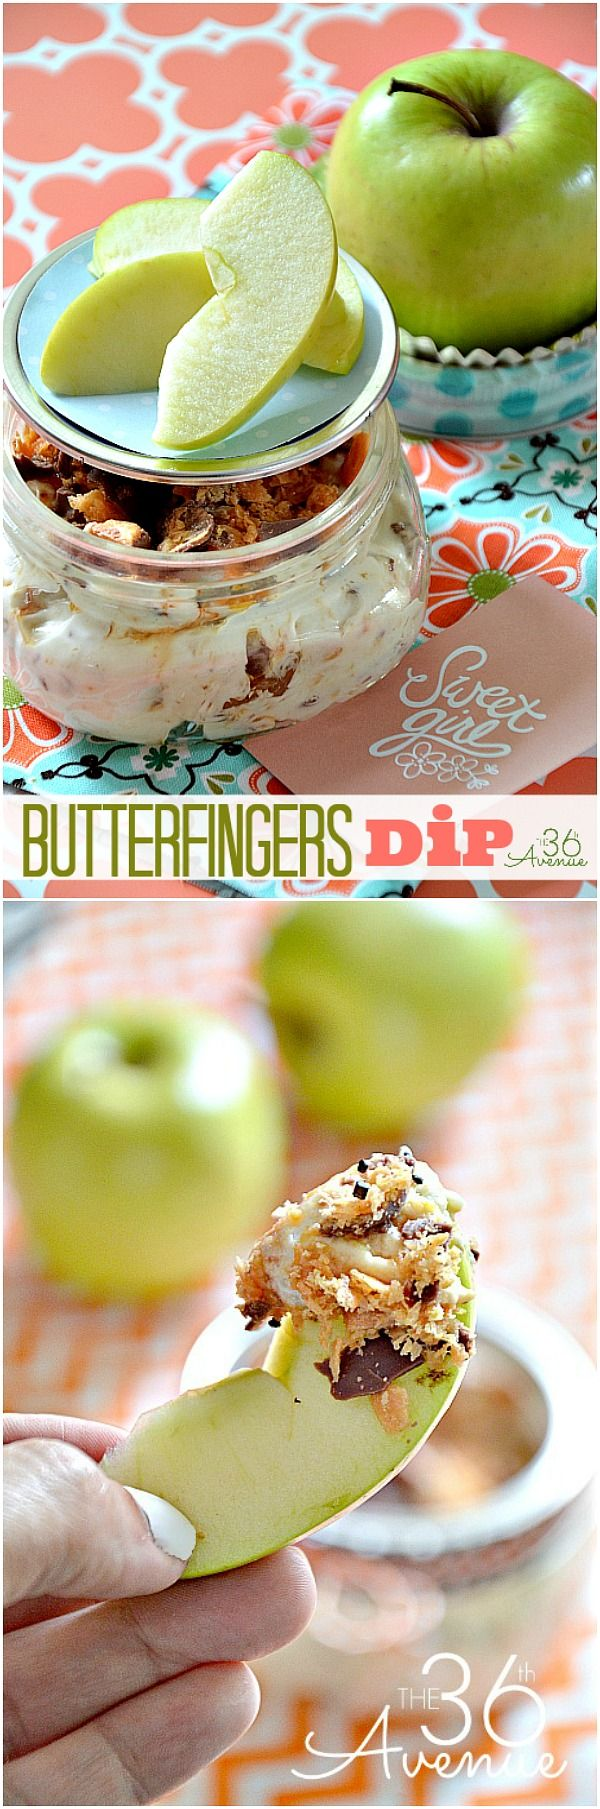 Delicious Butterfingers Dip Recipe